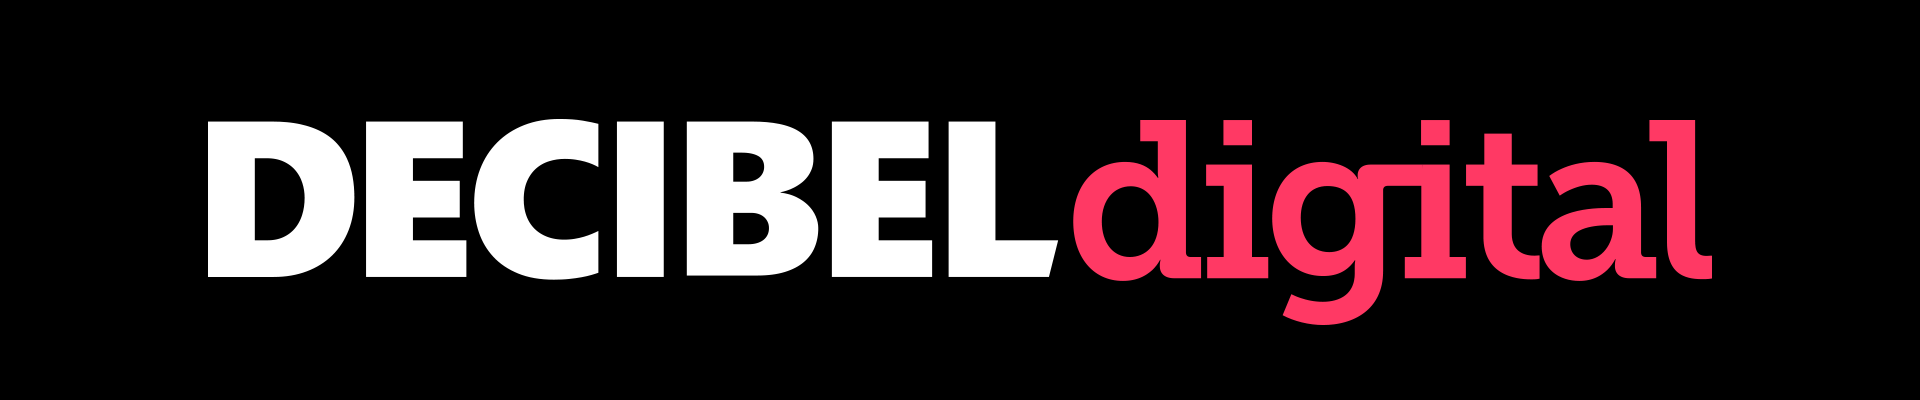 Decibel Digital